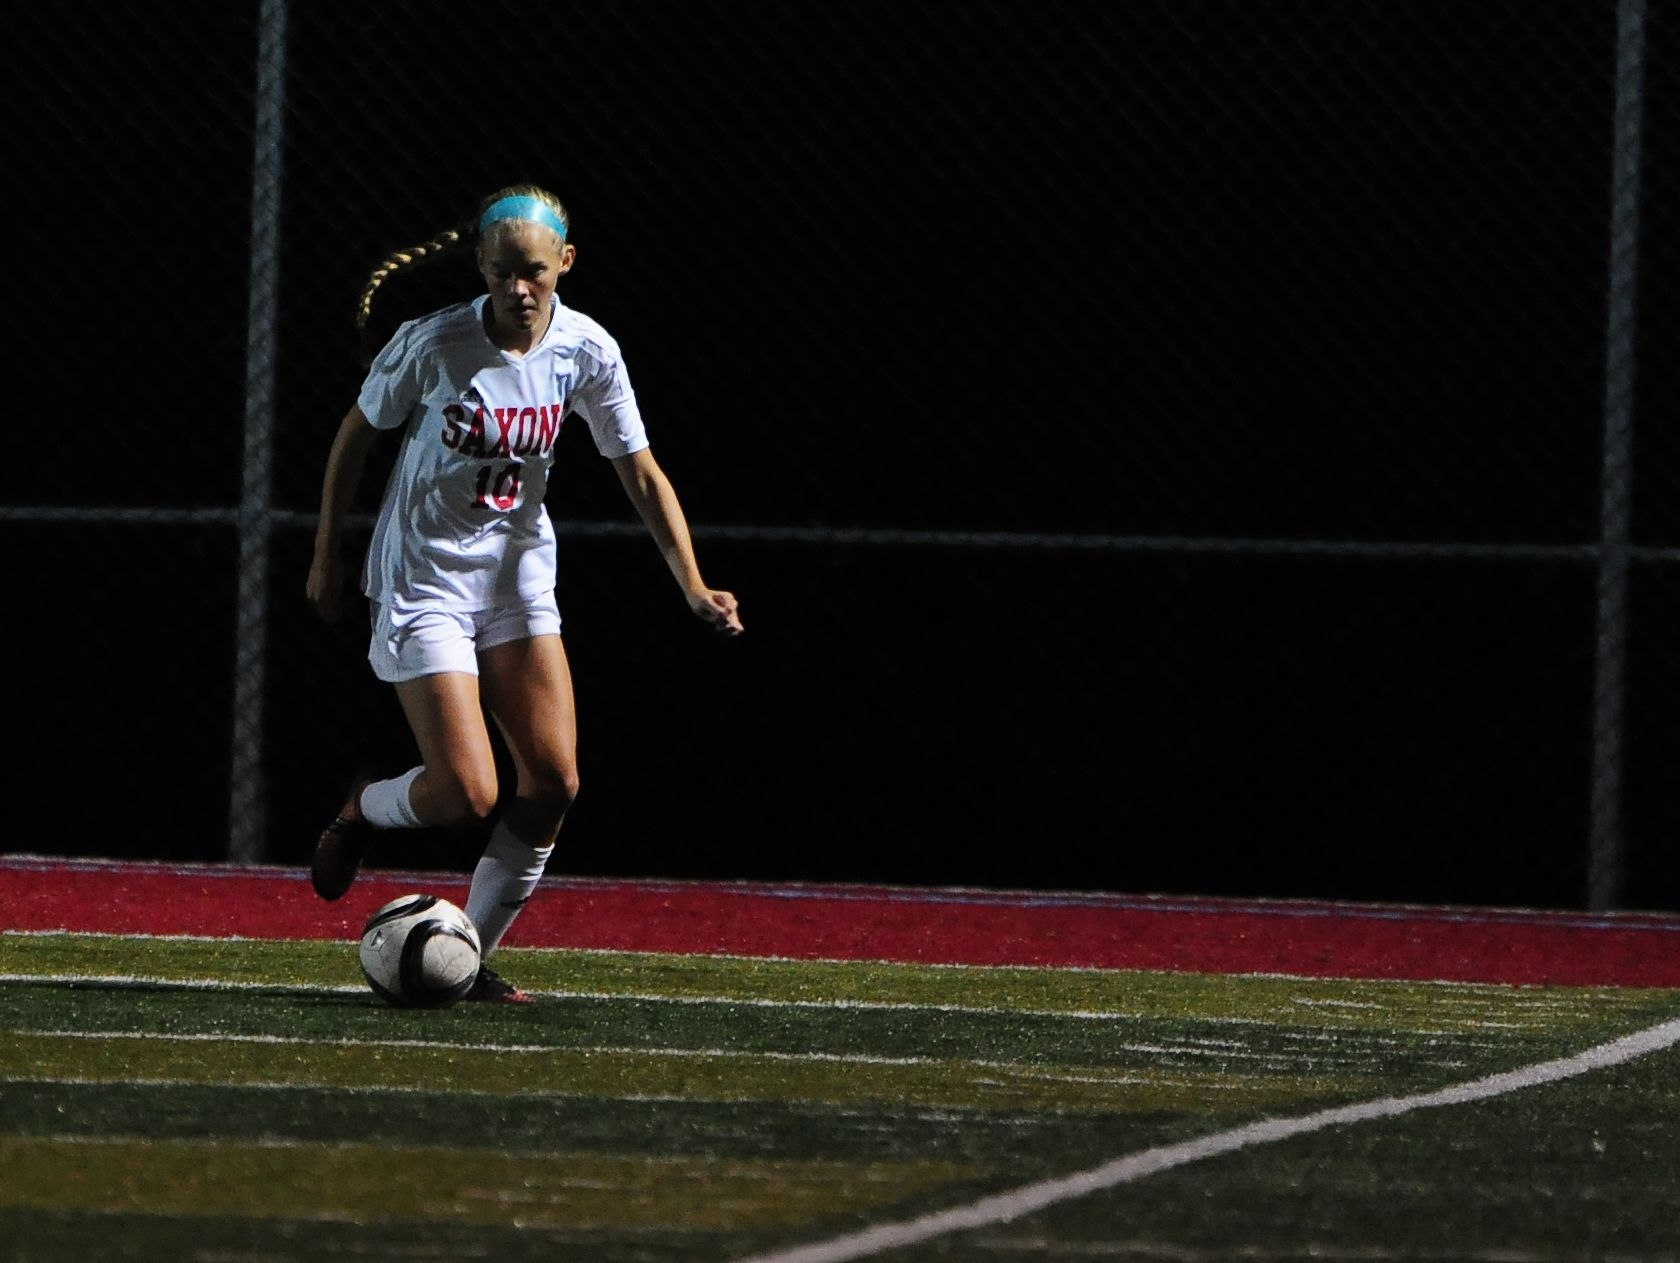 South Salem defender Hannah Hersh (10) with the ball against West Salem during a Greater Valley Conference game, Wednesday, Oct. 6, 2015, in Salem, Ore.